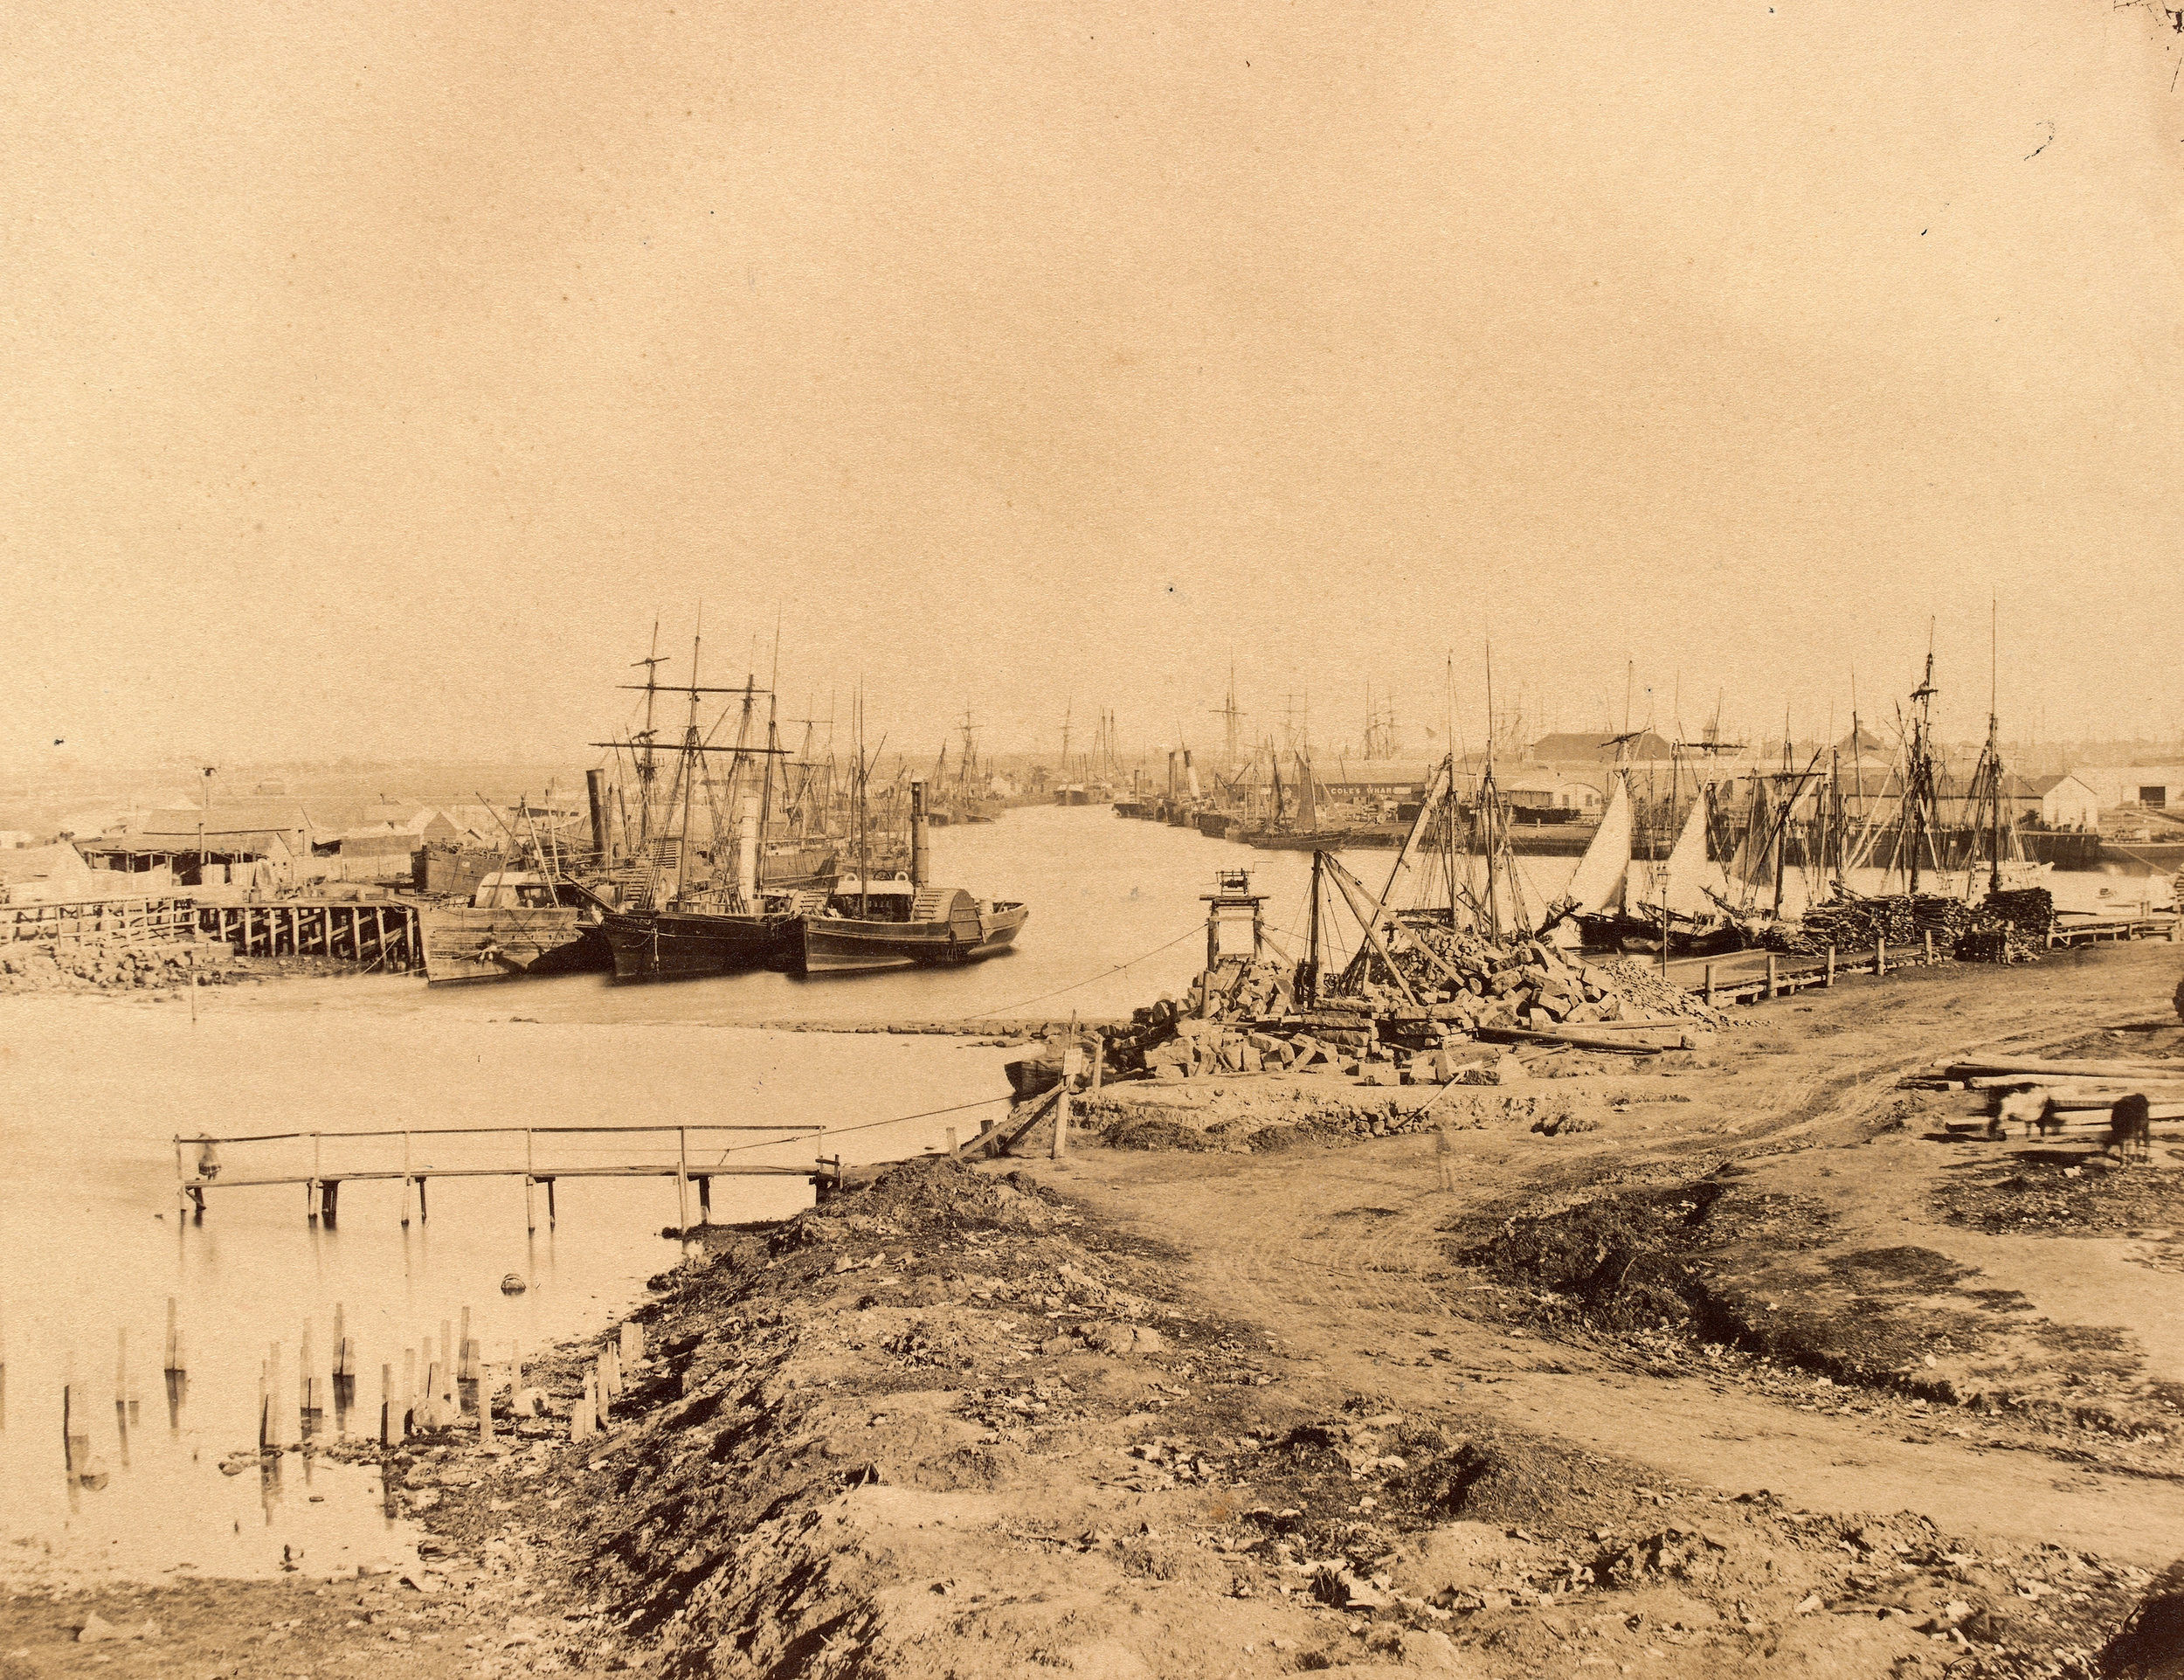 A downriver view of the original Yarra course, with the rock wall visible in the centre.  Image:http://ergo.slv.vic.gov.au